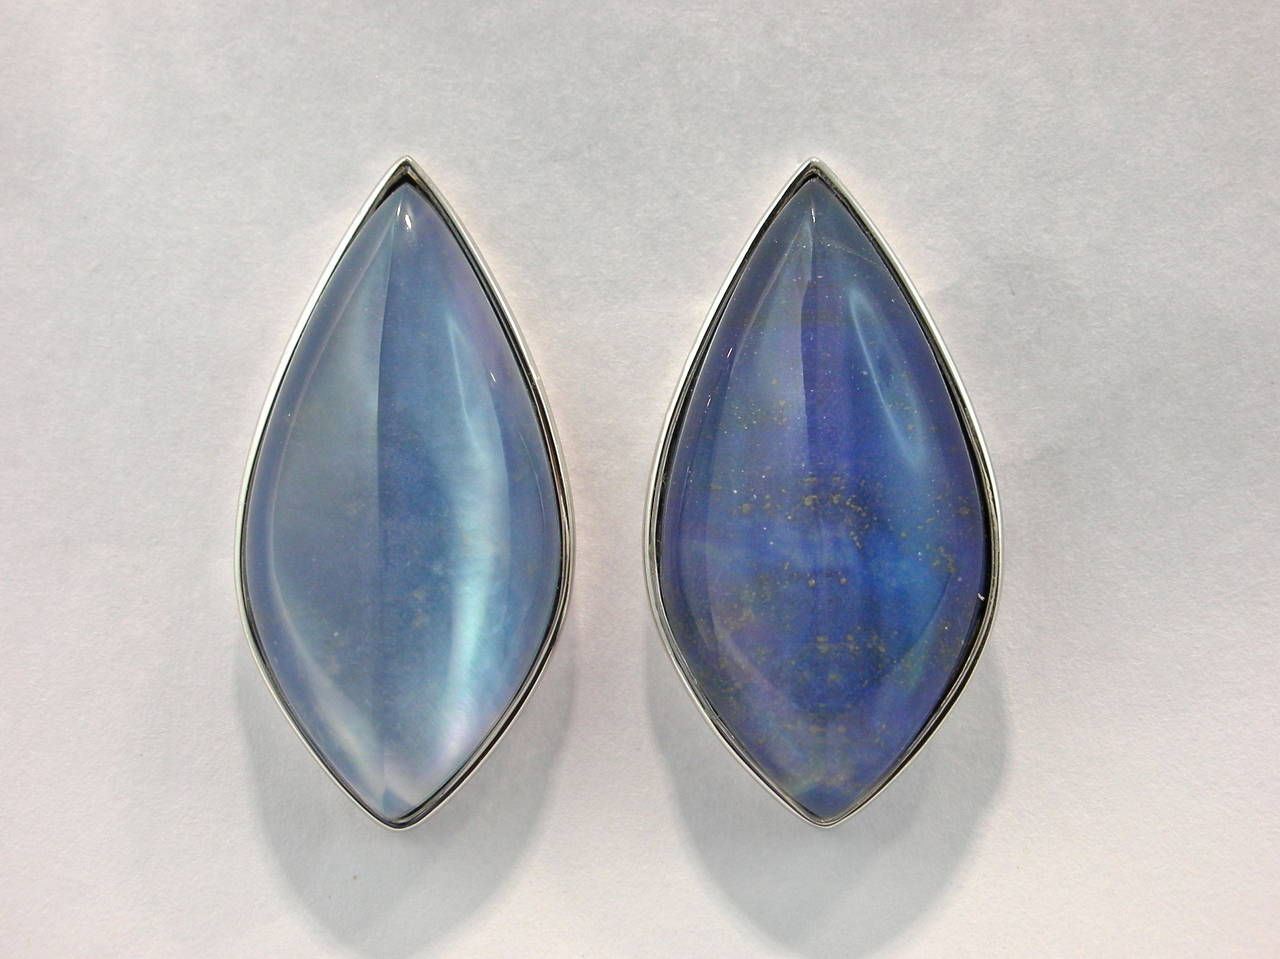 Jona design collection, hand crafted in Italy, 18 Karat white gold earrings set with a cabochon cut Quartz over Lapis Lazuli and Mother of Pearl, weighing 54.28 carats. Clips can be mounted upon request. All Jona jewelry is new and has never been